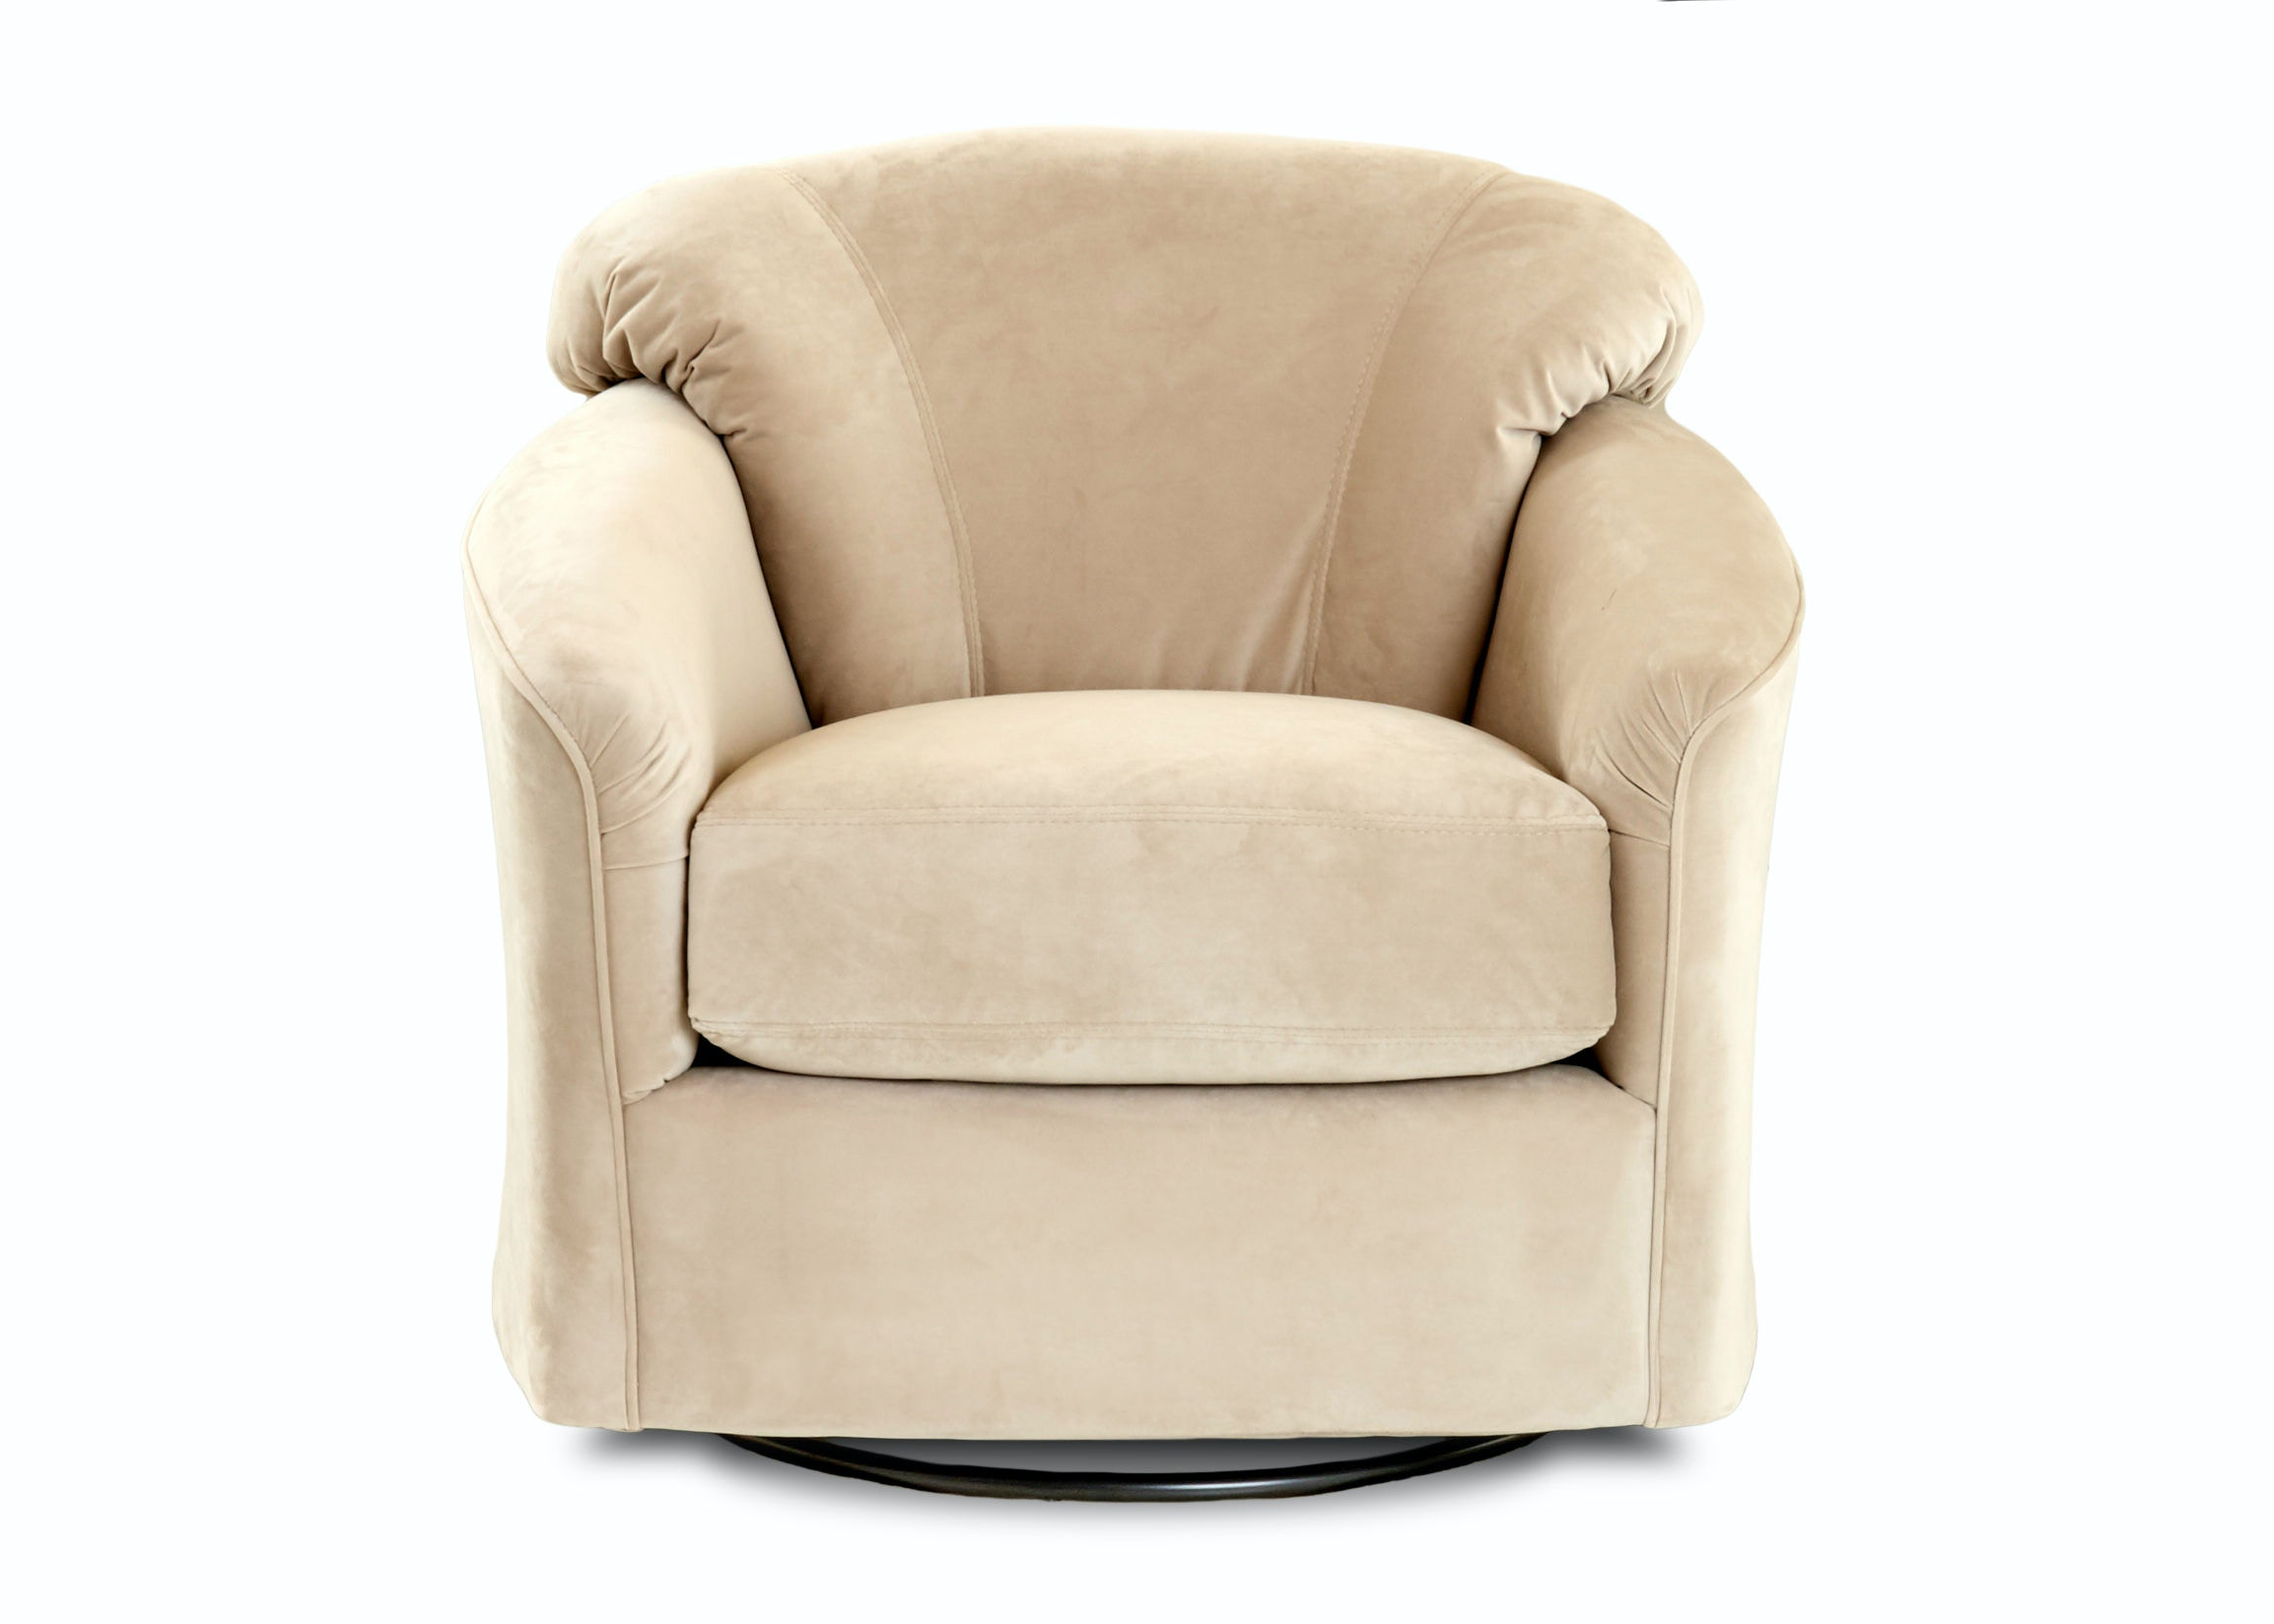 living room swivel glider chairs modern country rooms uk klaussner 12 swgl home furnishings